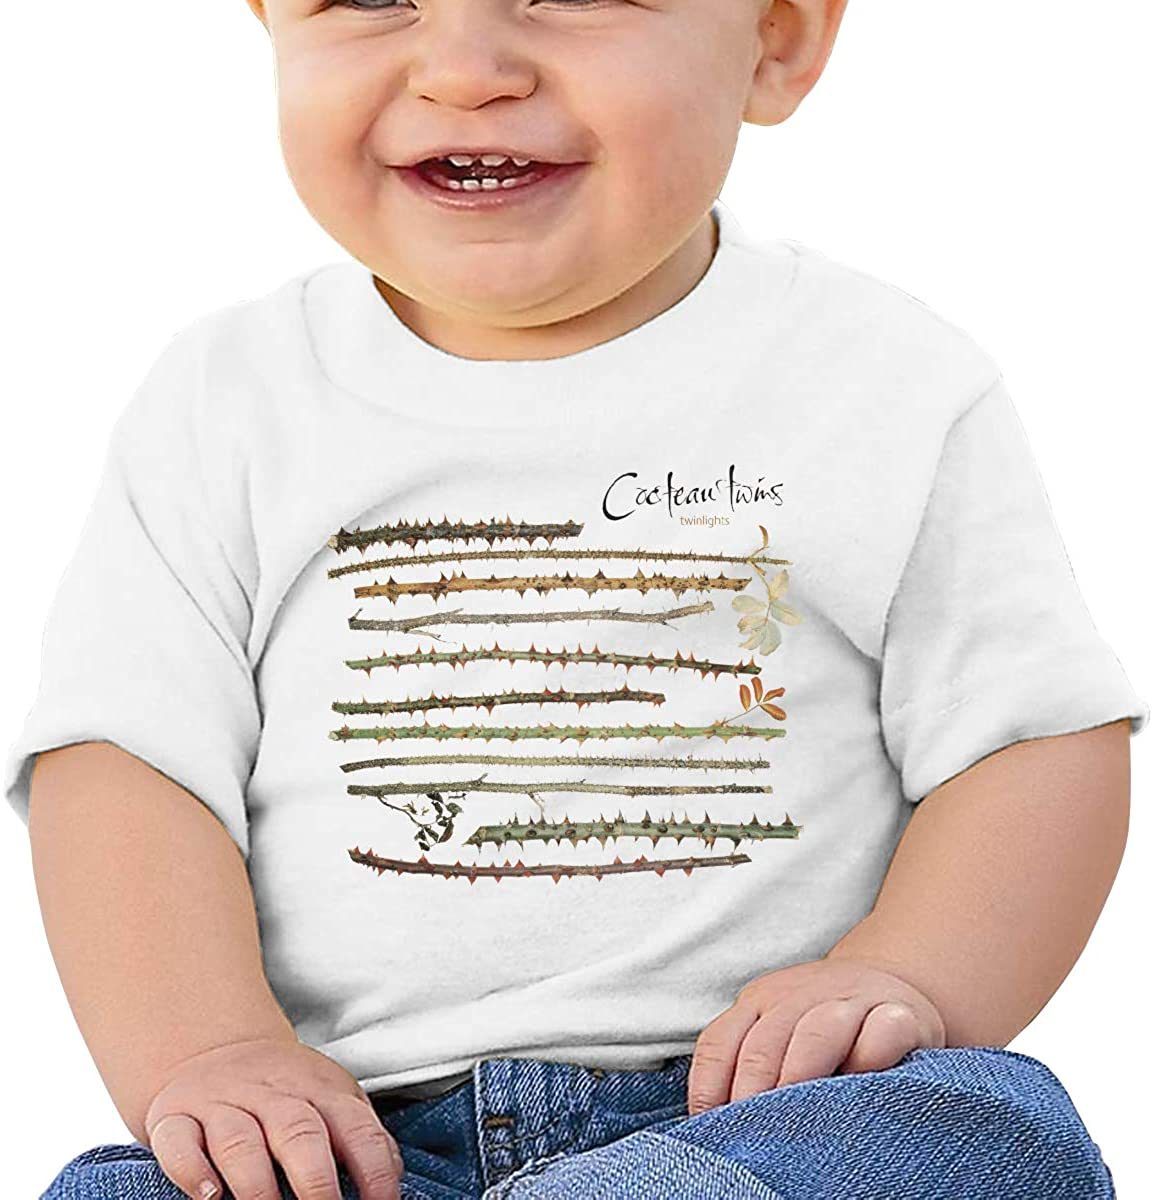 Kangtians Baby Cocteau-Twins-Twinlights- Short Sleeve Shirt Toddler Tee